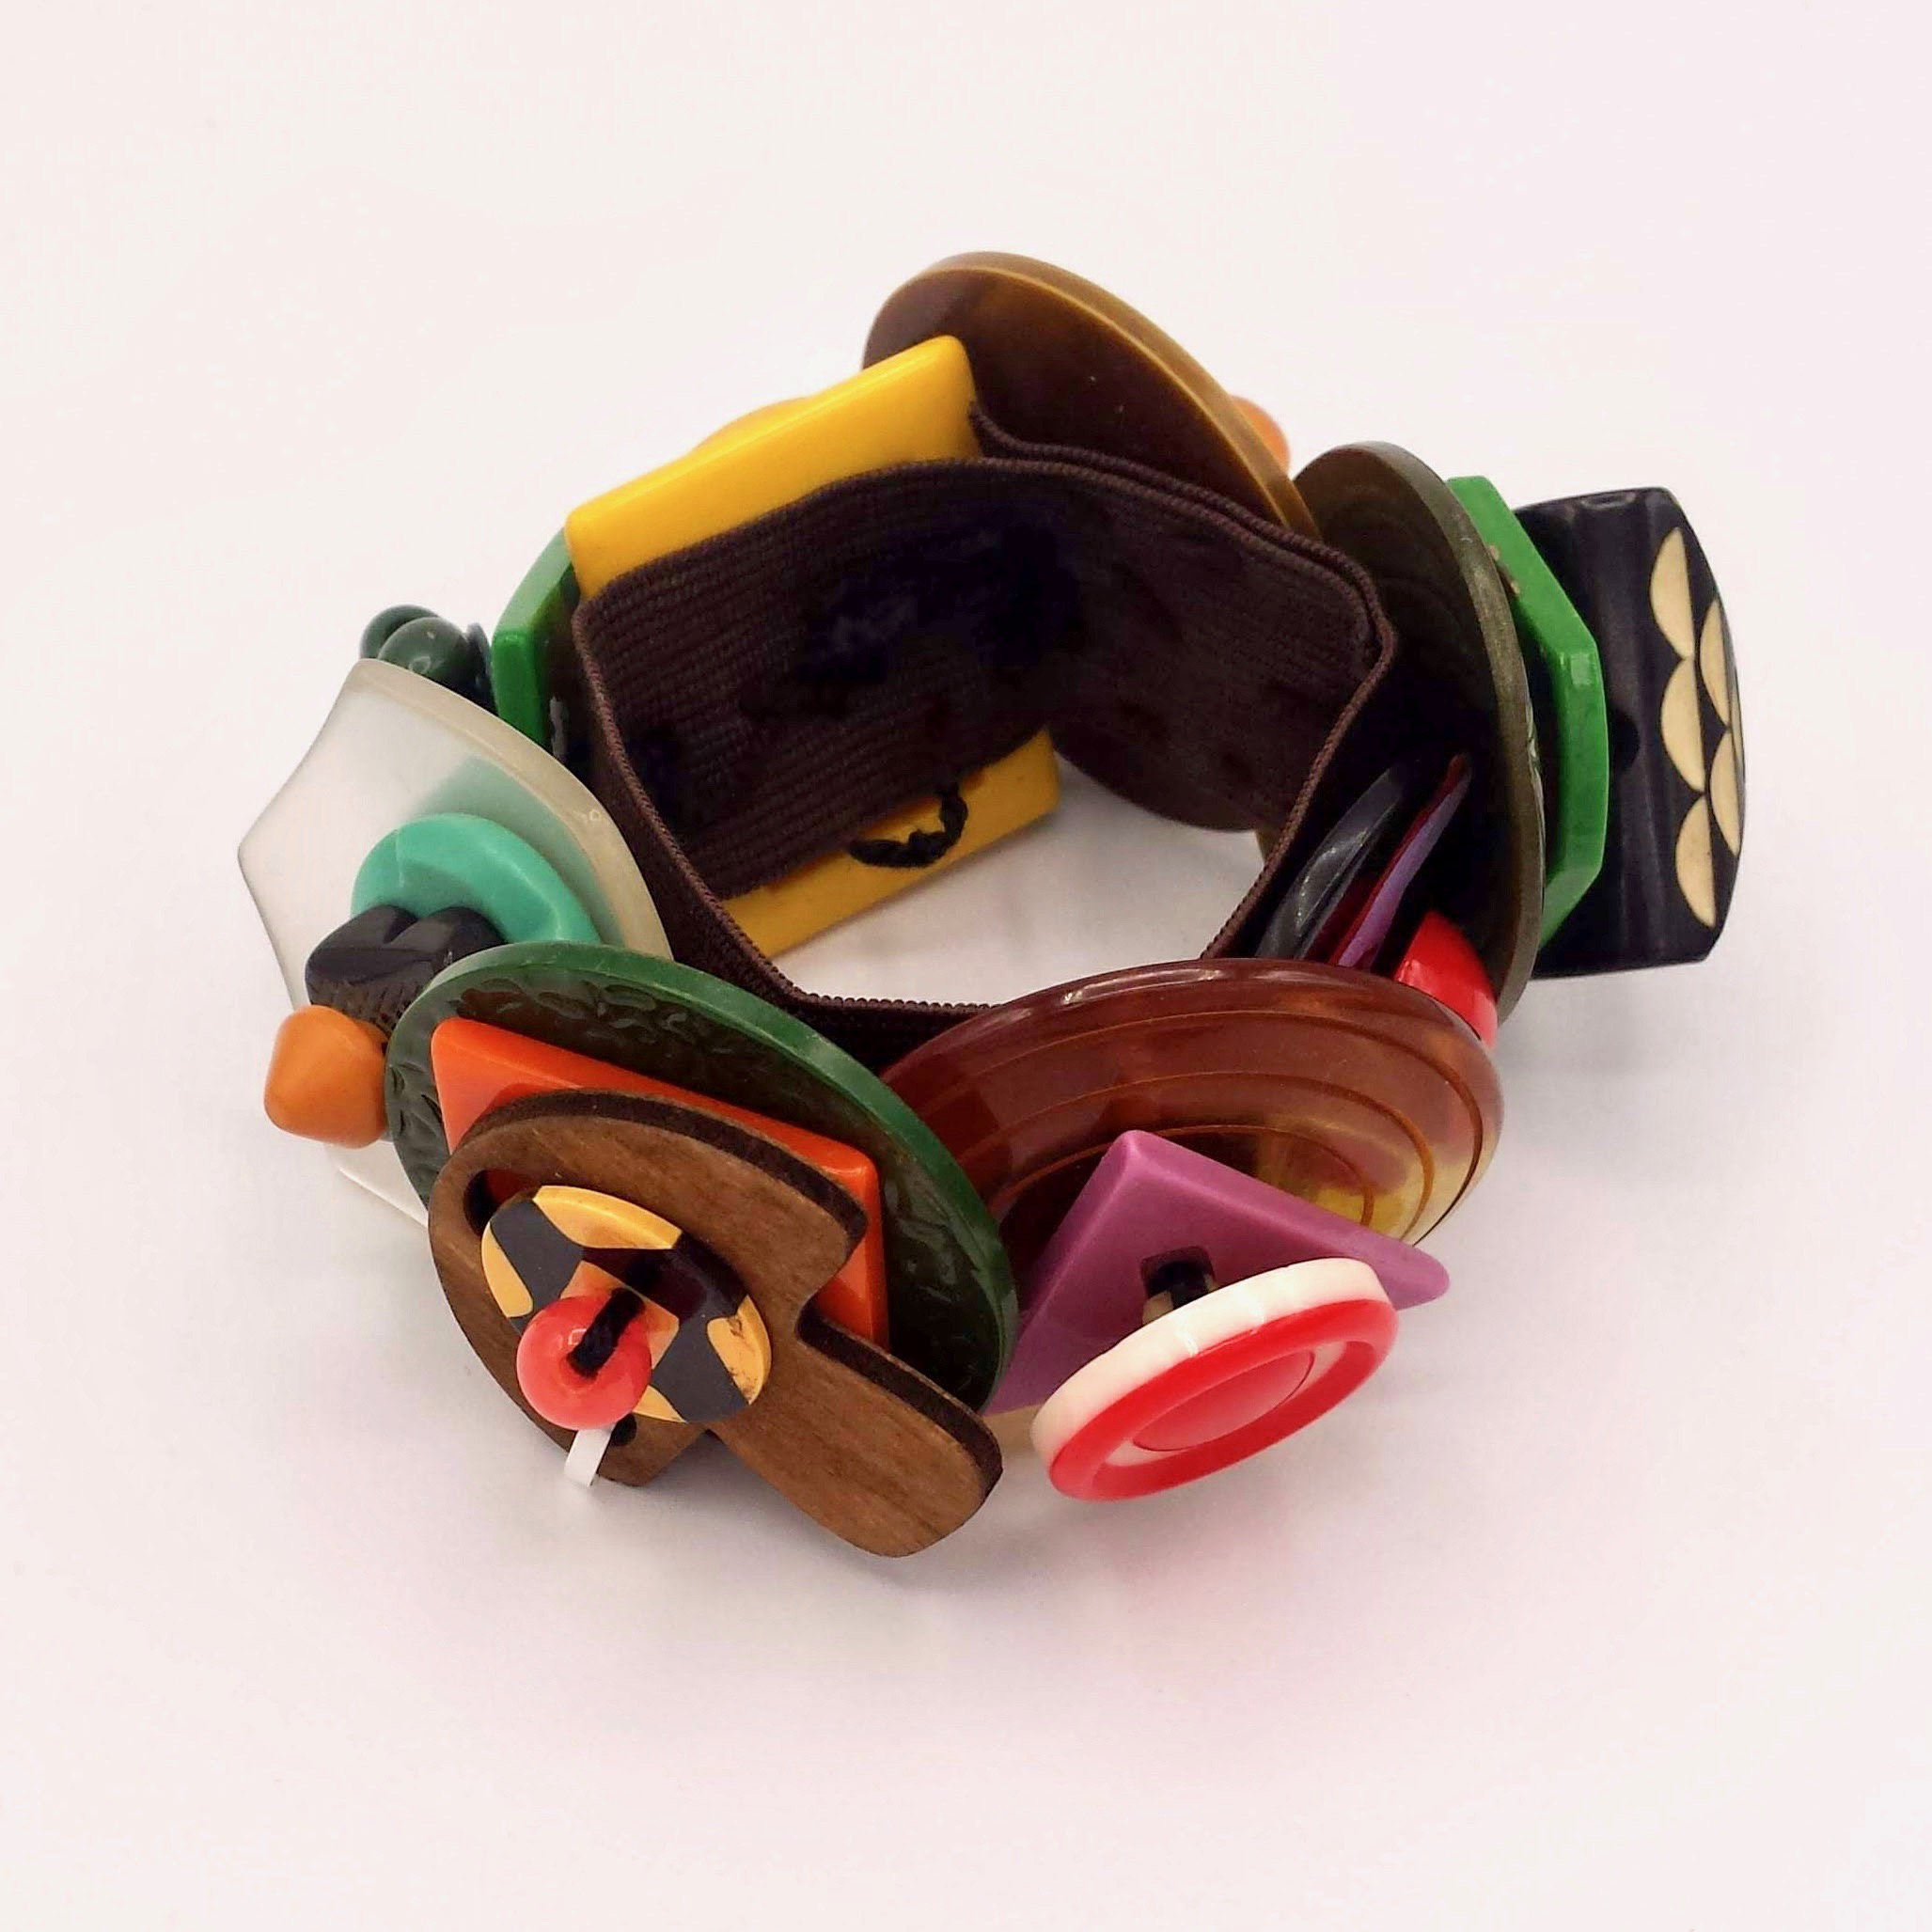 Composition Bracelet (Bakelite, Lucite and Wood)